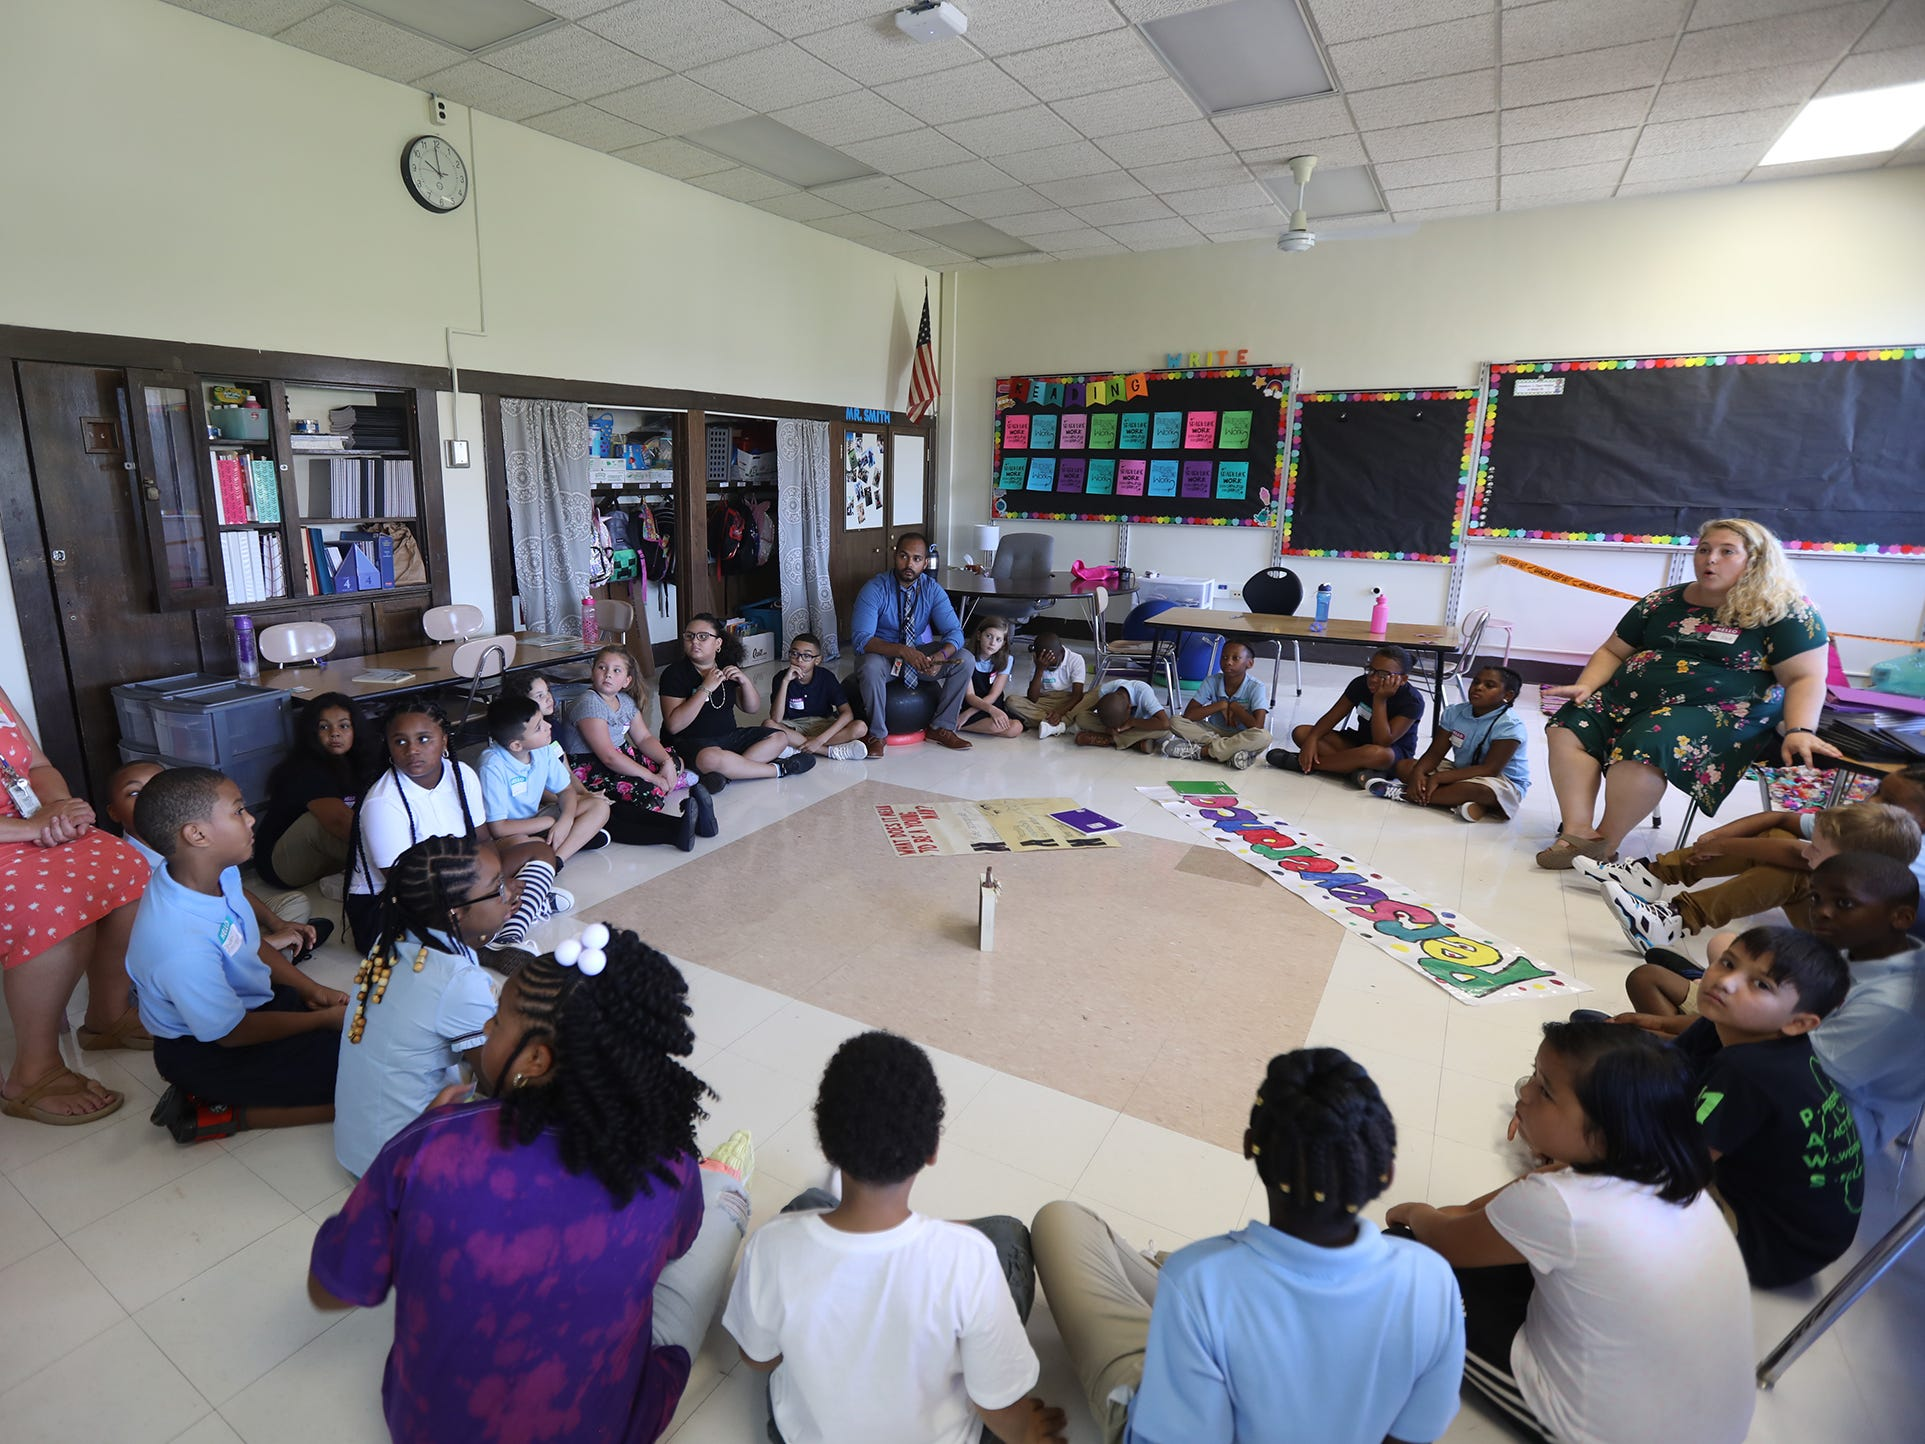 Three fourth-grade classes share a morning meeting at RISE Community School/Community School No. 106, formerly School 41, on their first day of school.  Morning meeting is a time for students and teachers to connect and get to know one another.